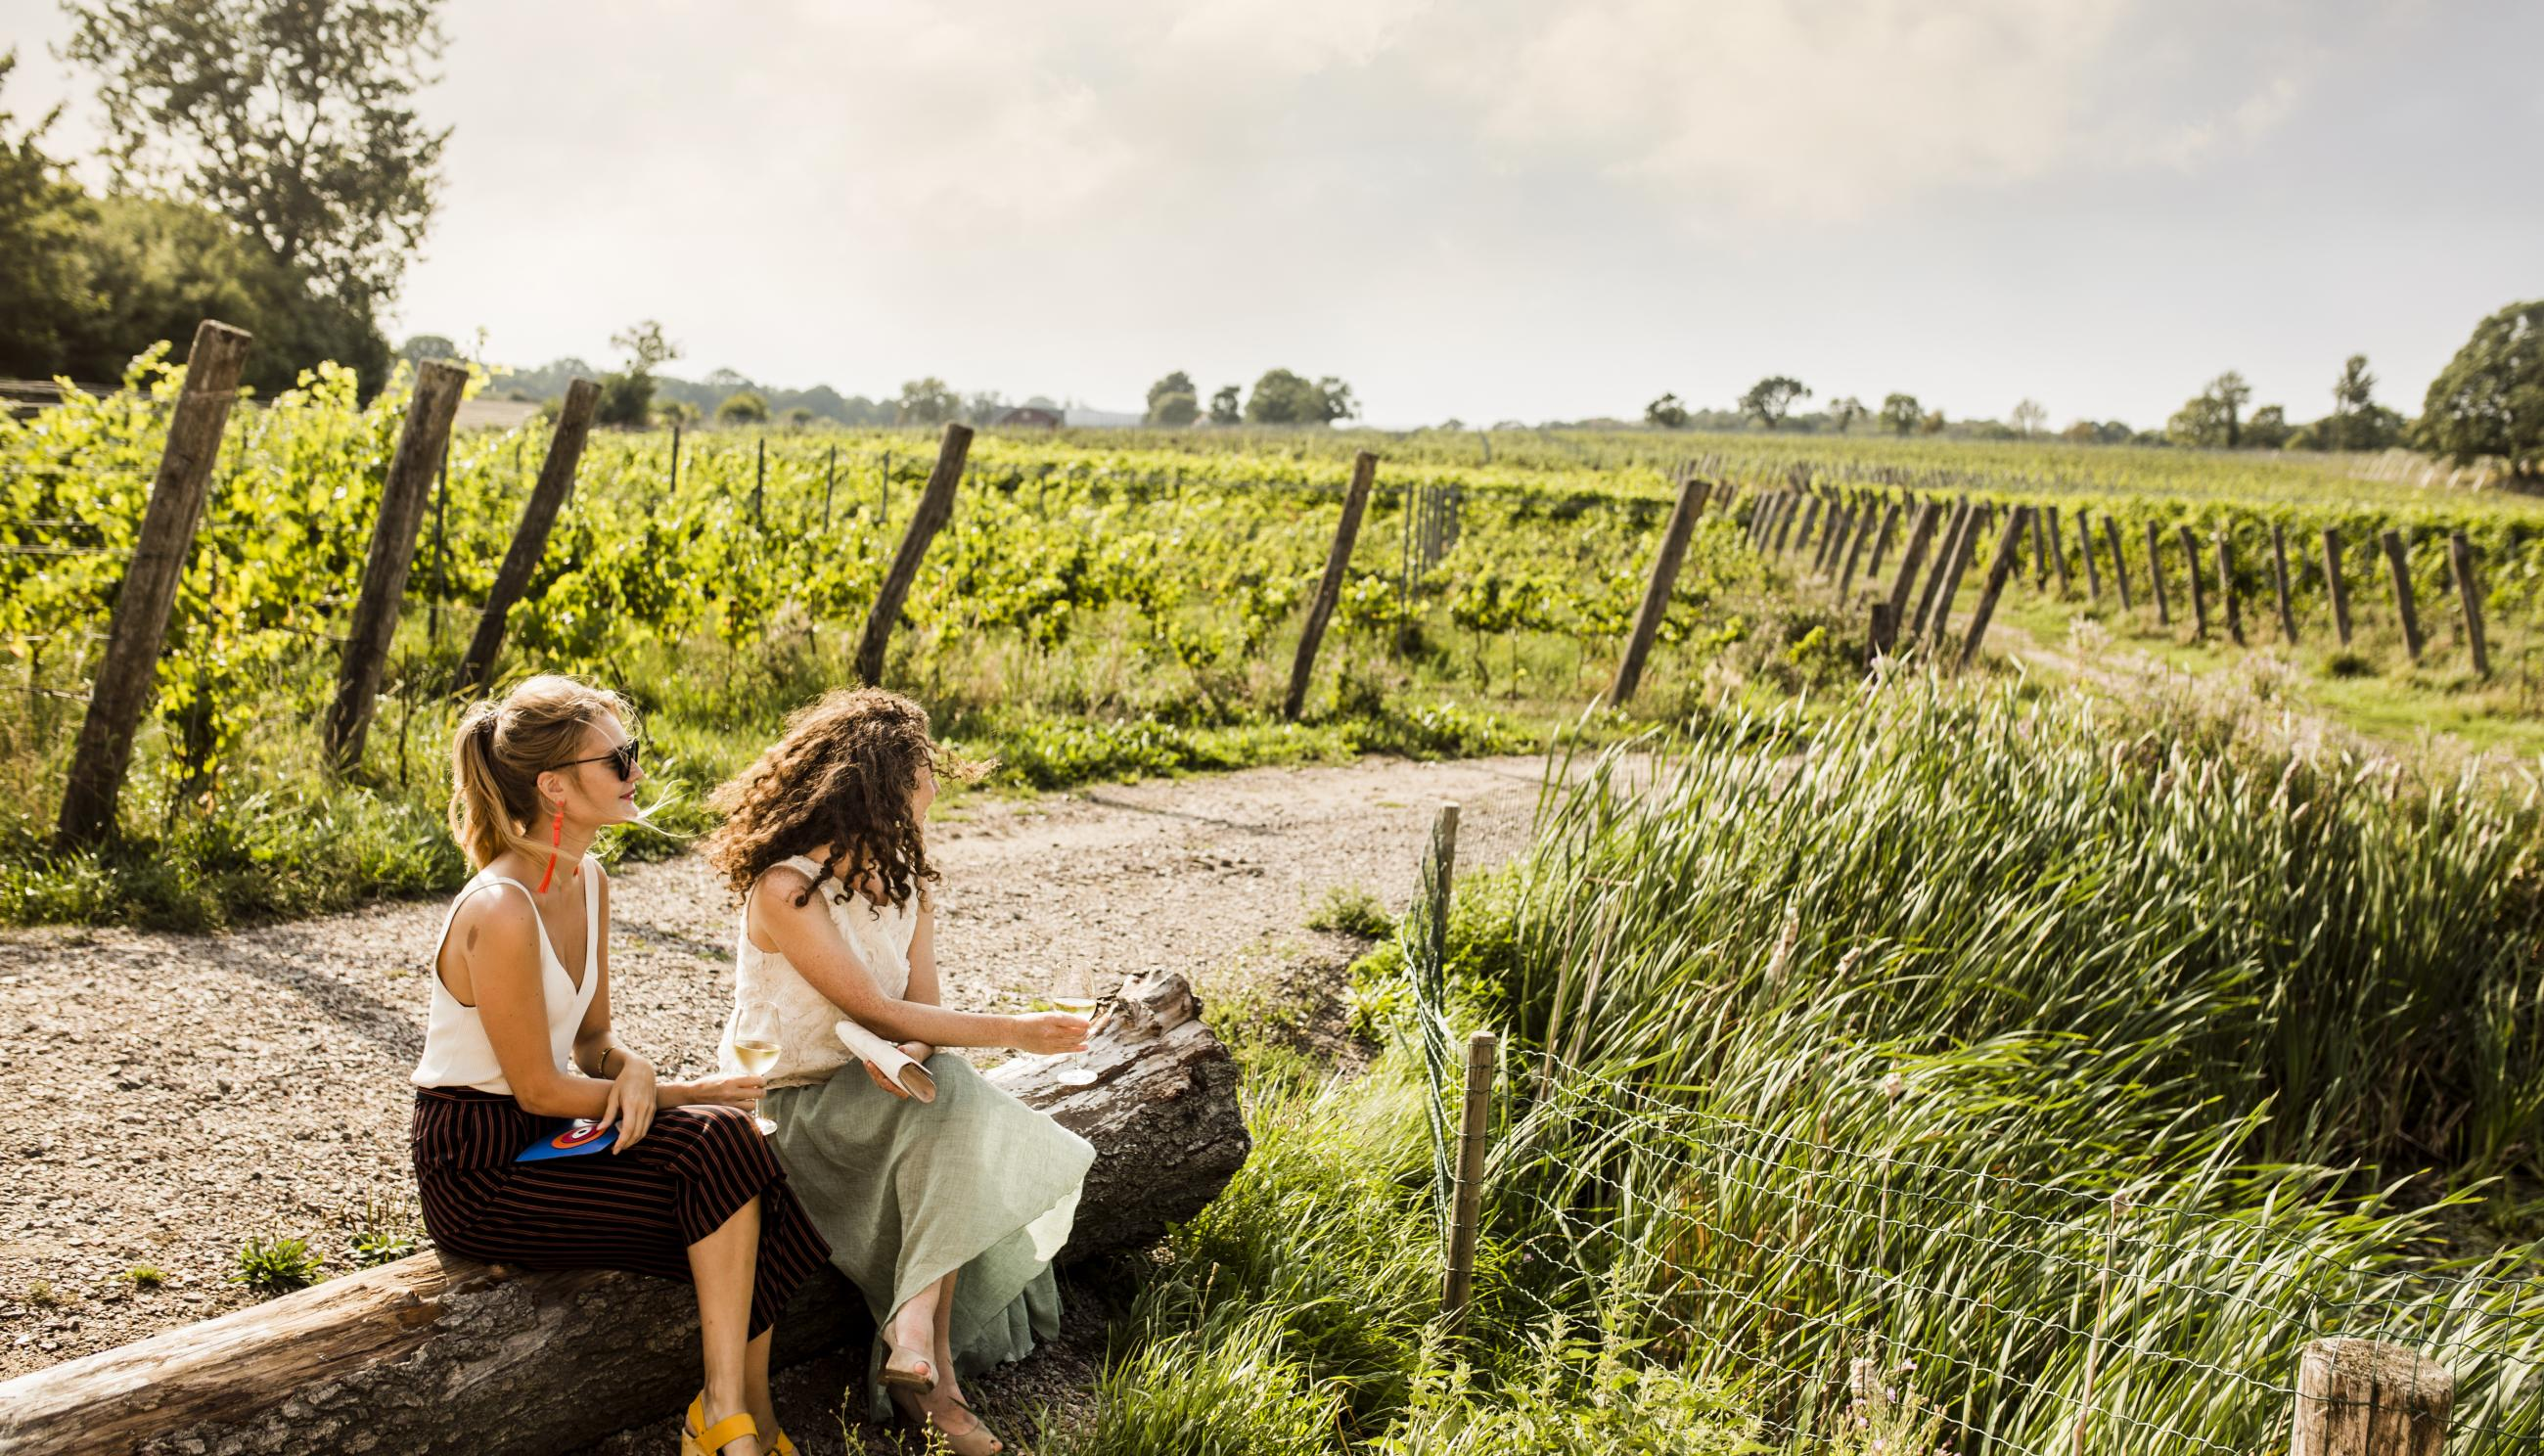 Women sitting on log next to gravel road and a vineyard